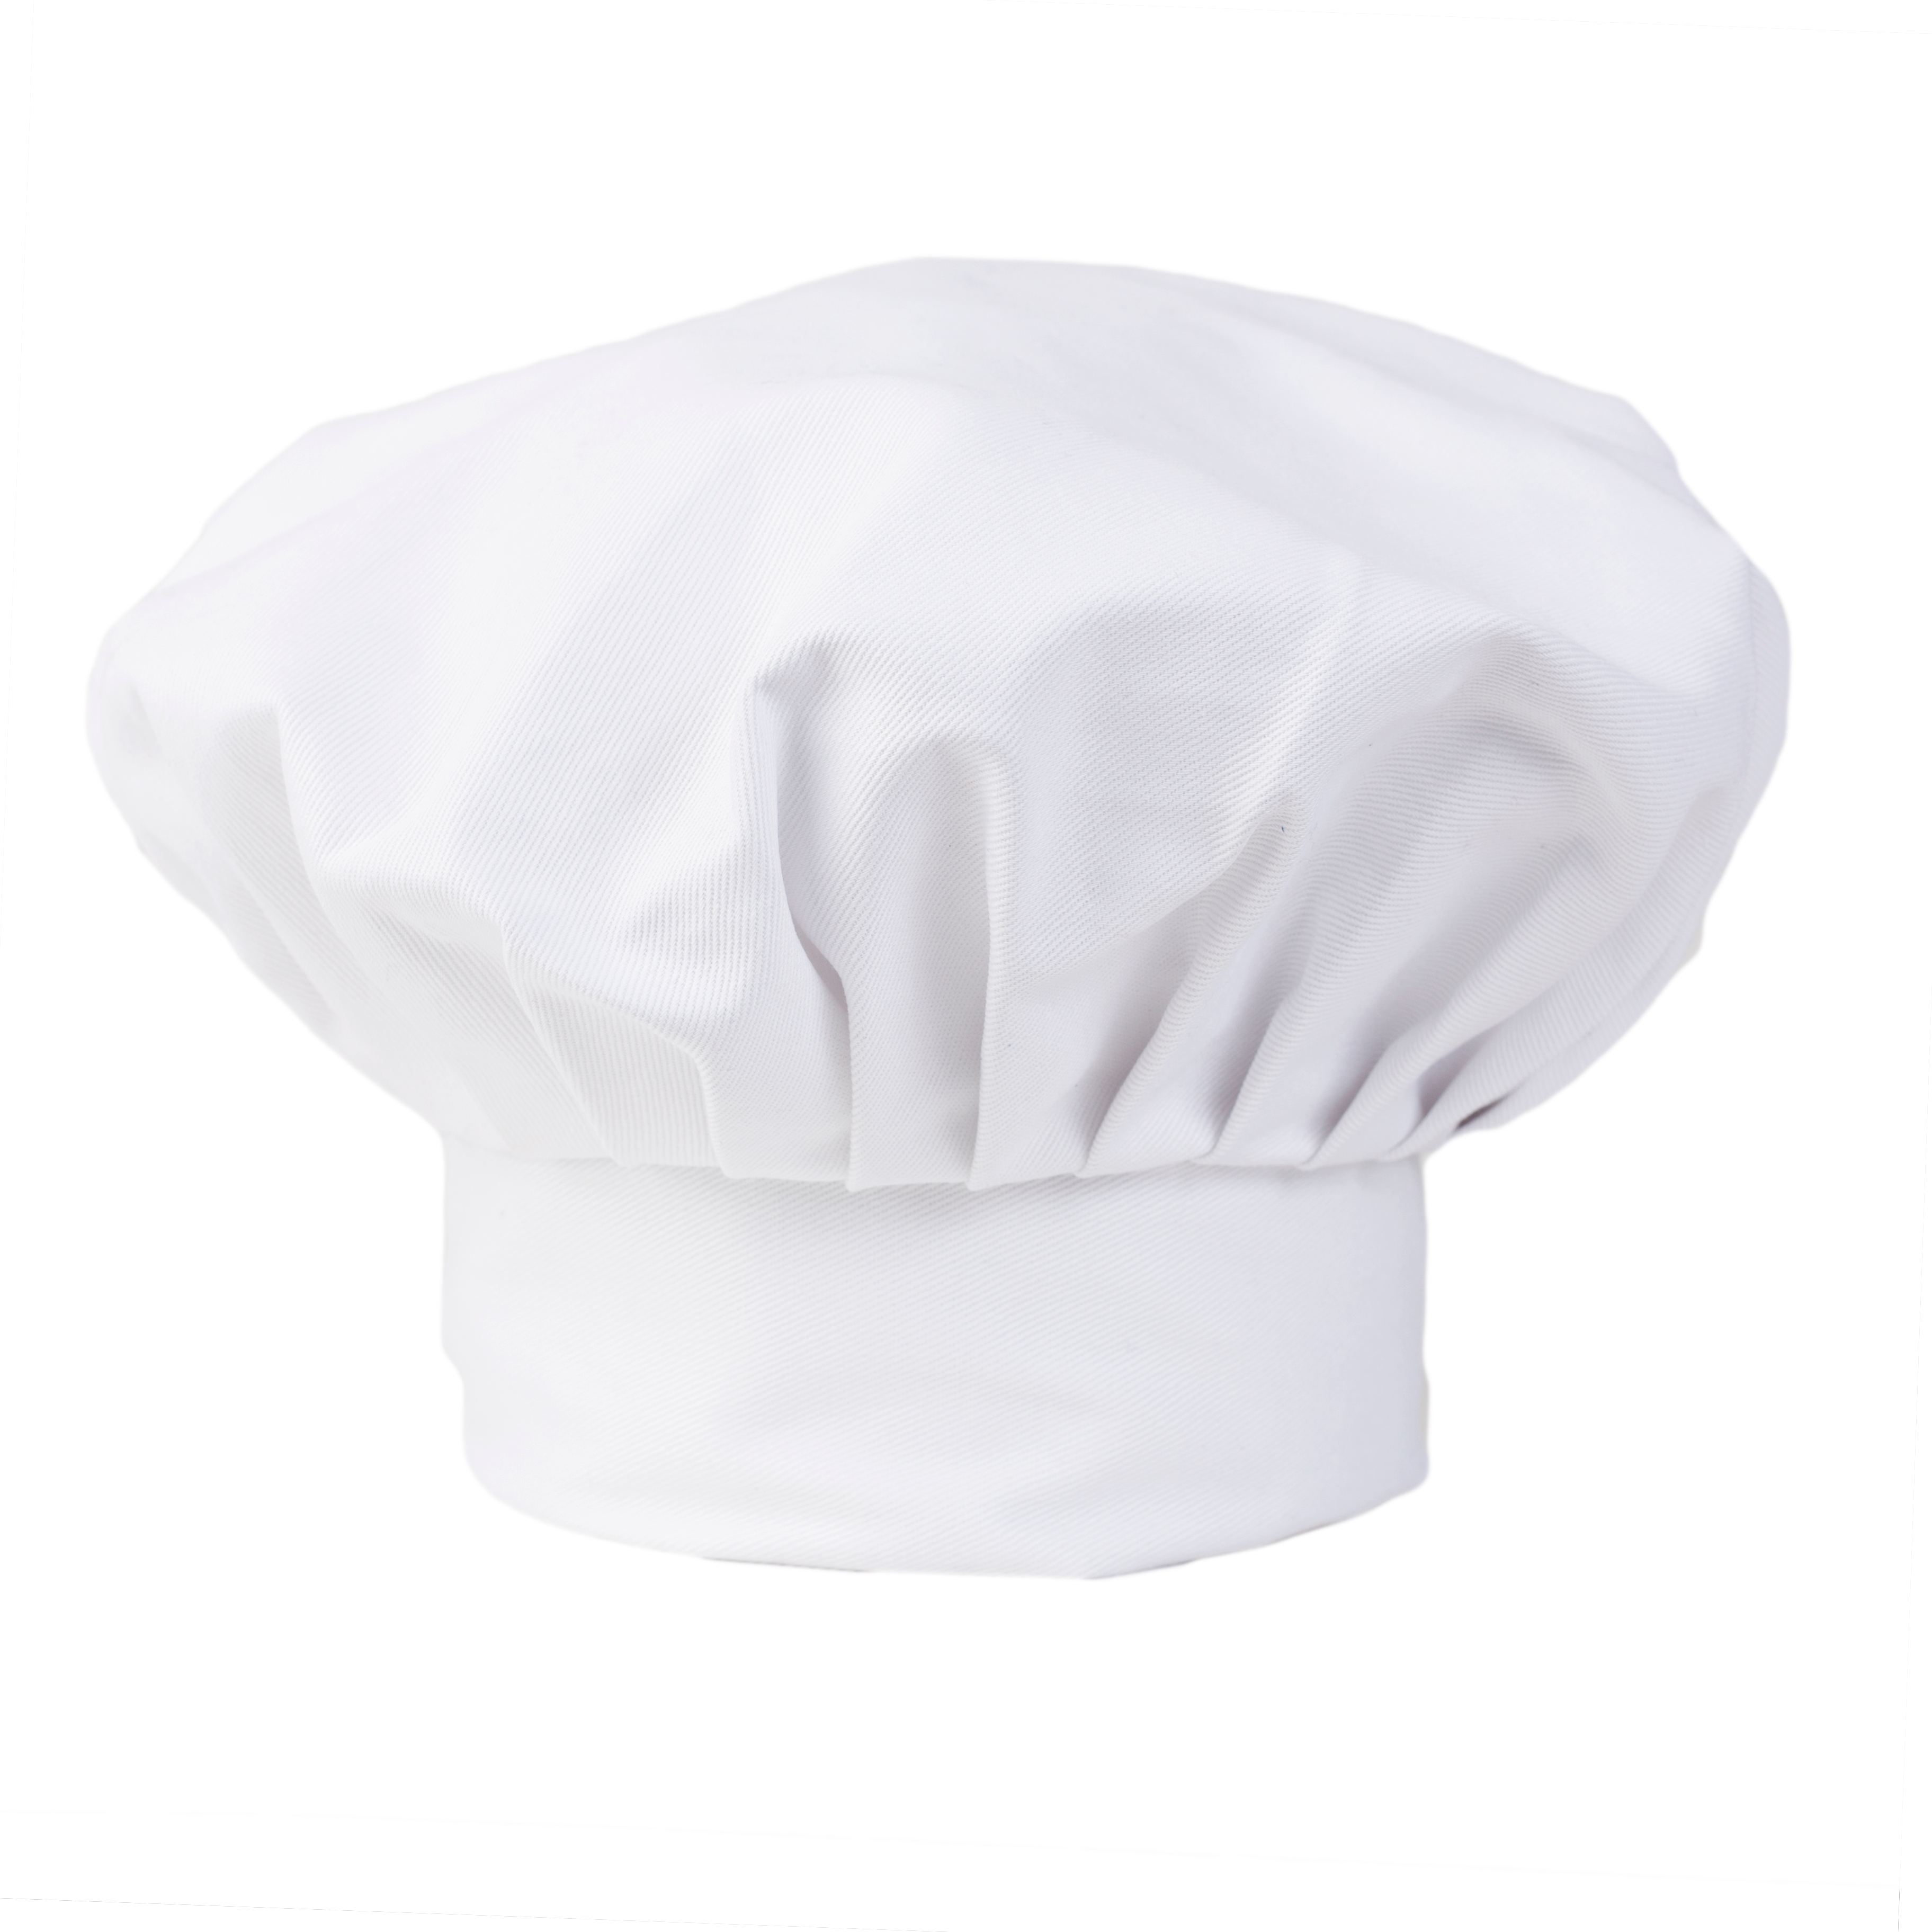 kitchen hats pull out shelves for chefs and skull caps kng com white chef hat 13 inch